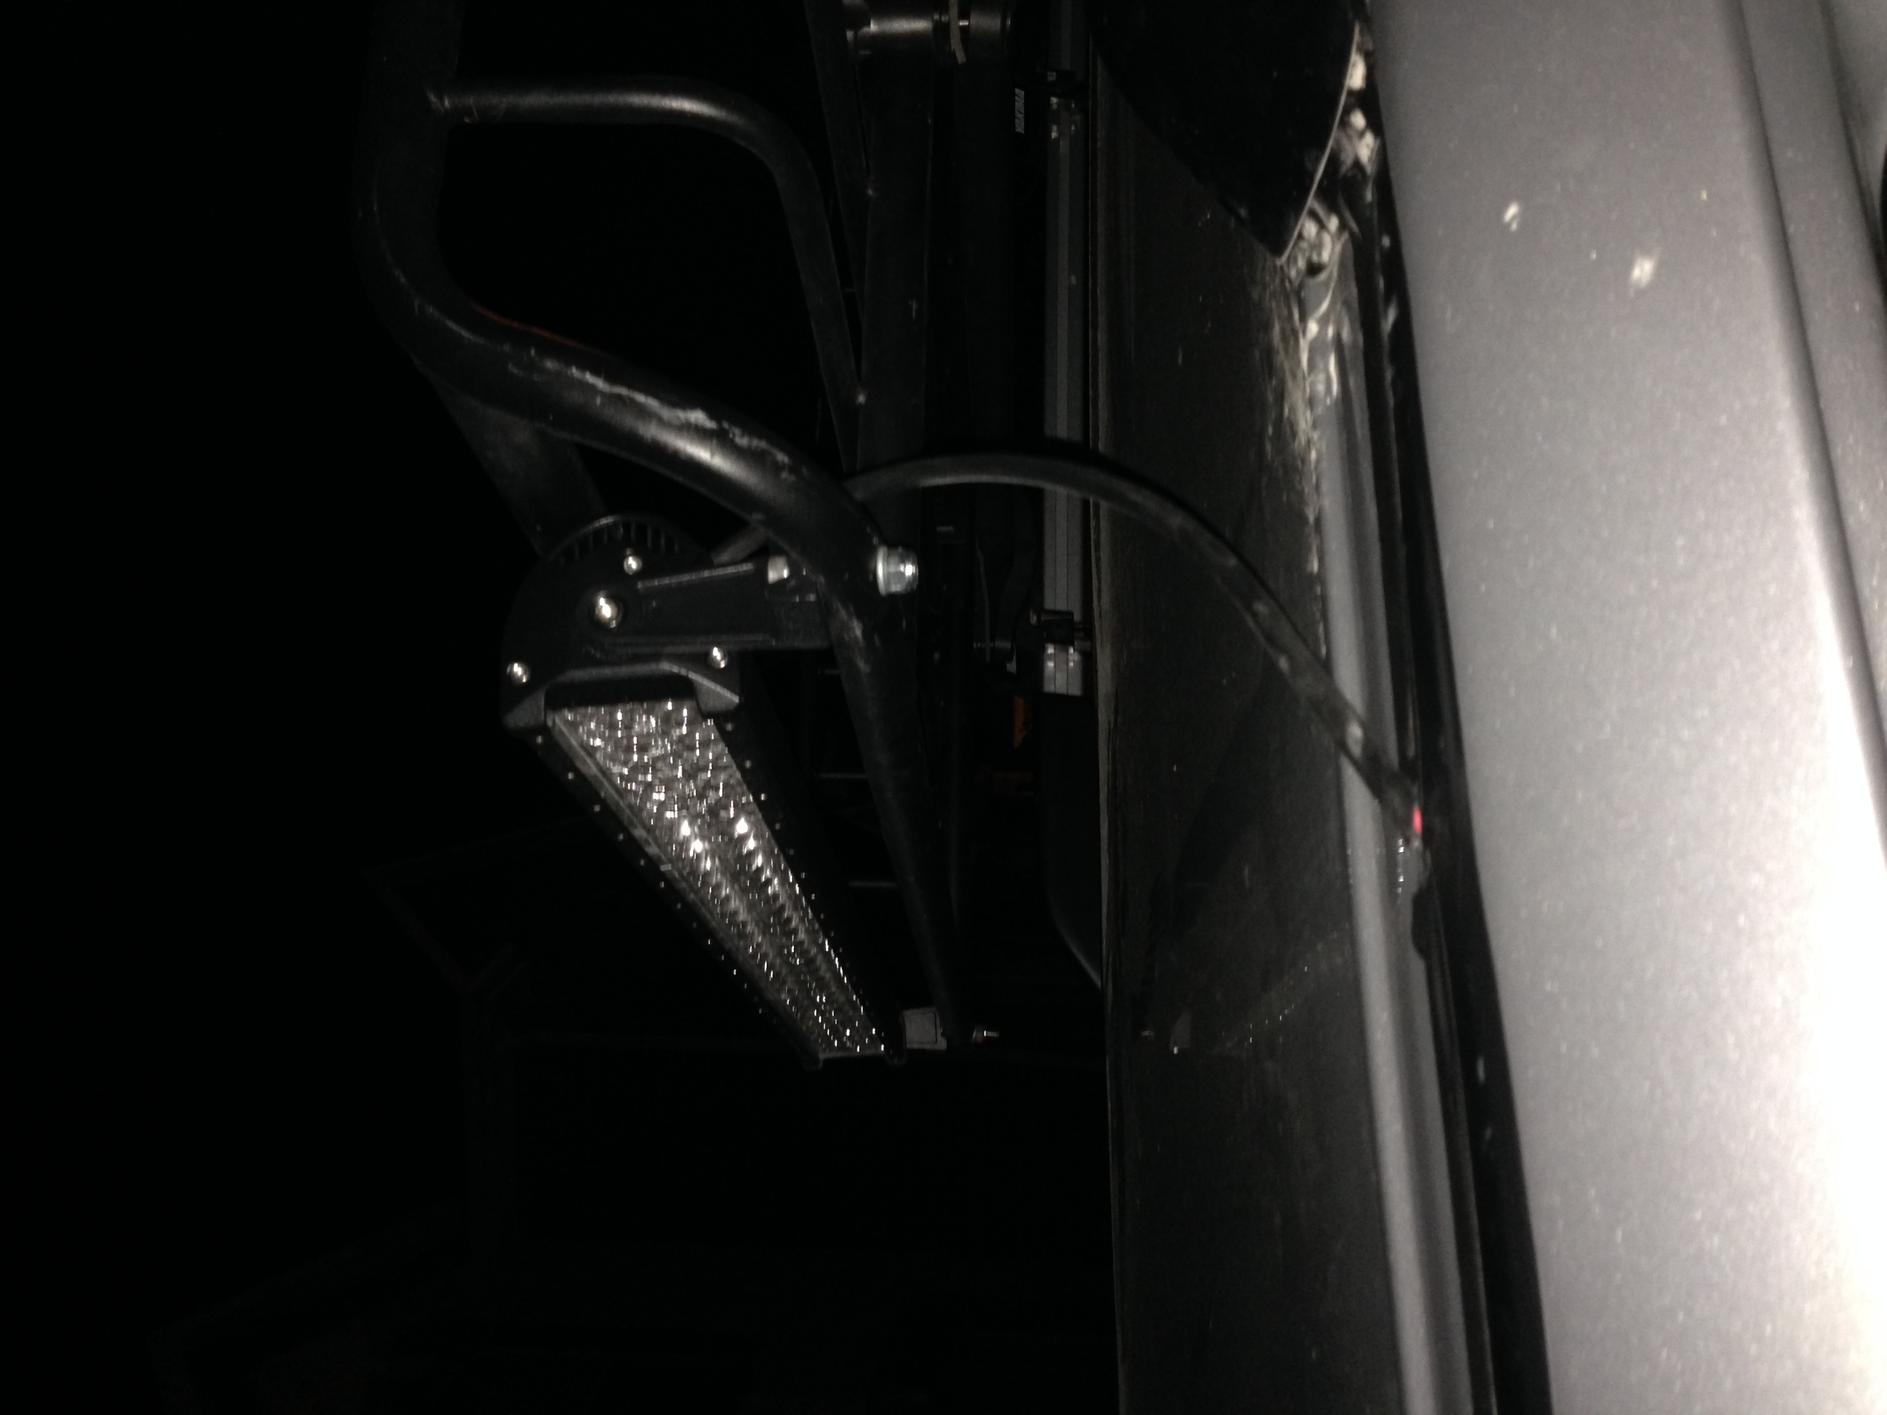 heavily requested installed pics of light bar w/ basket, spacers, and bar brightness-outside-wire-jpg